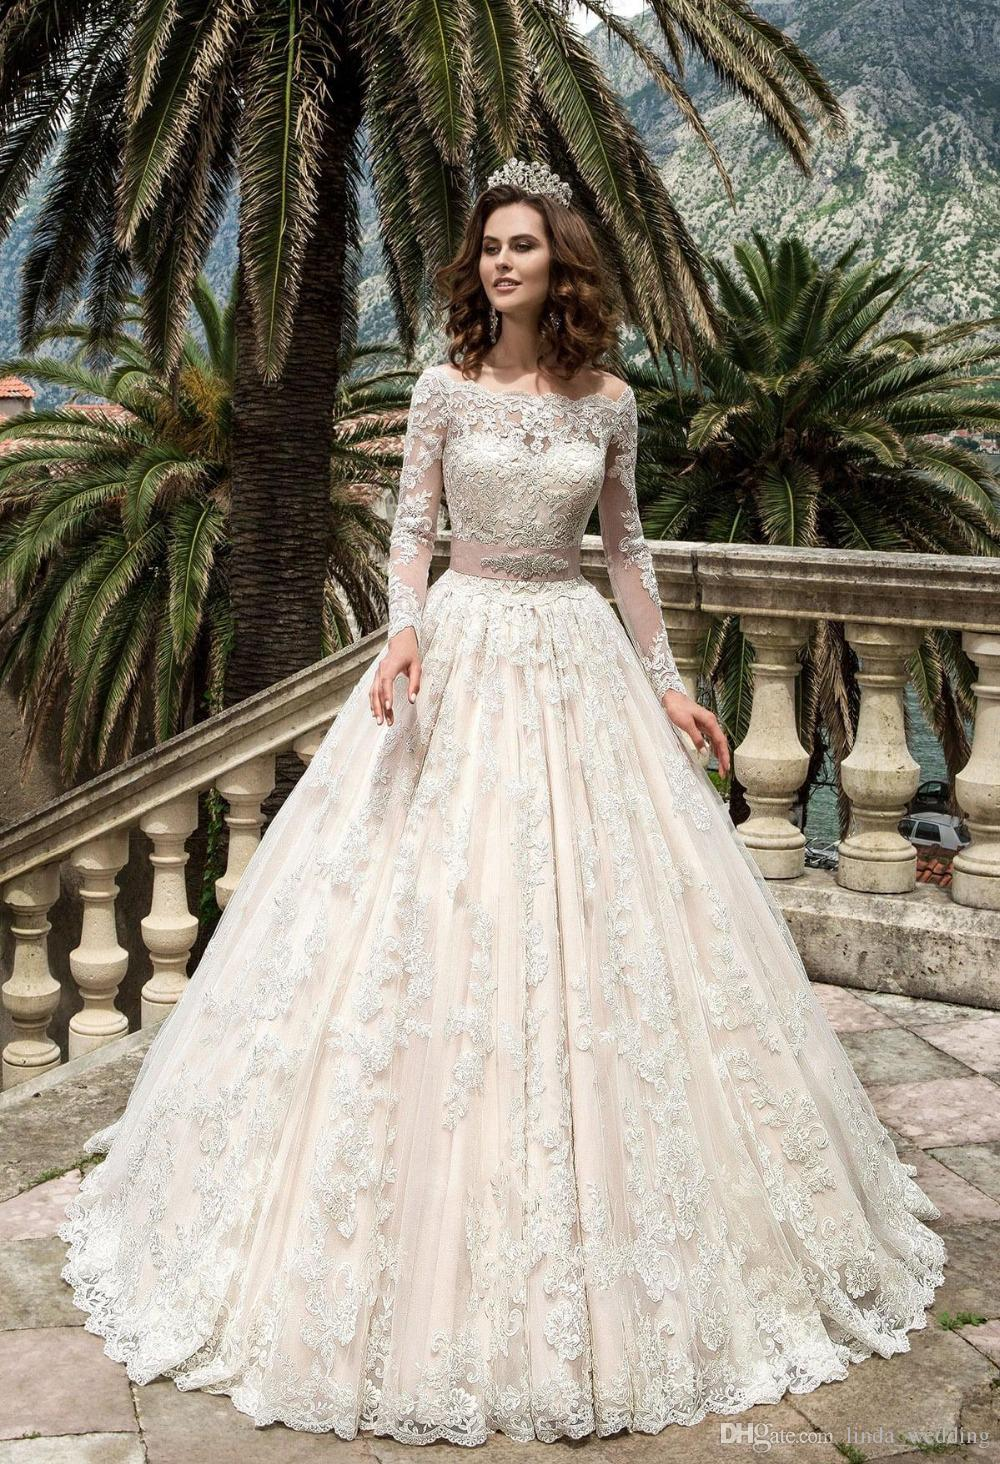 2017 Stunning Full Sleeves Lace Ball Gown Wedding Dress Vintage Bridal Gown  Plus Size Custom Made Vestido De Noiva Classy Wedding Dresses Designer  Bridal ... e5a71df9a1e4